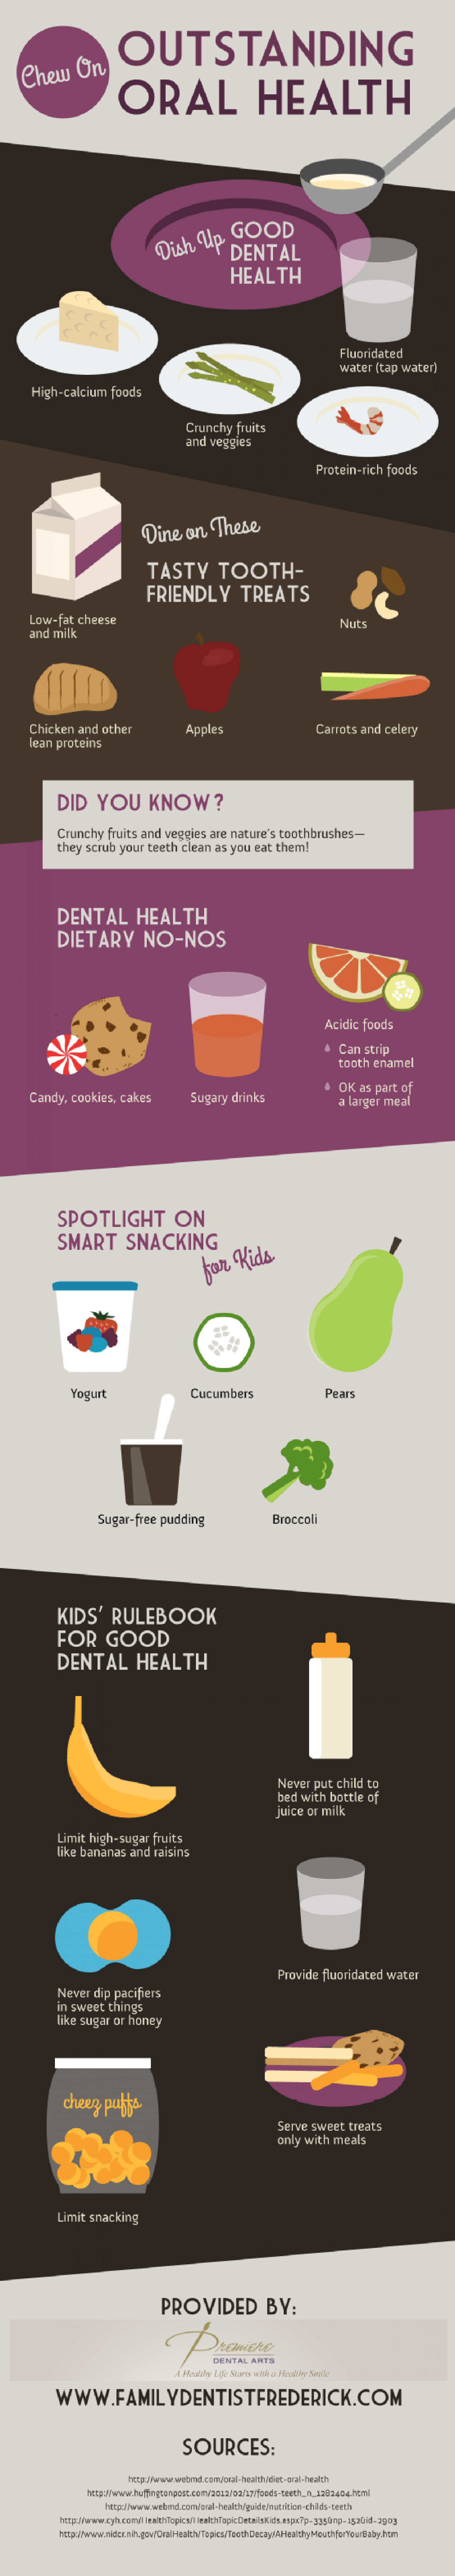 Chew On Outstanding Oral Health Infographic